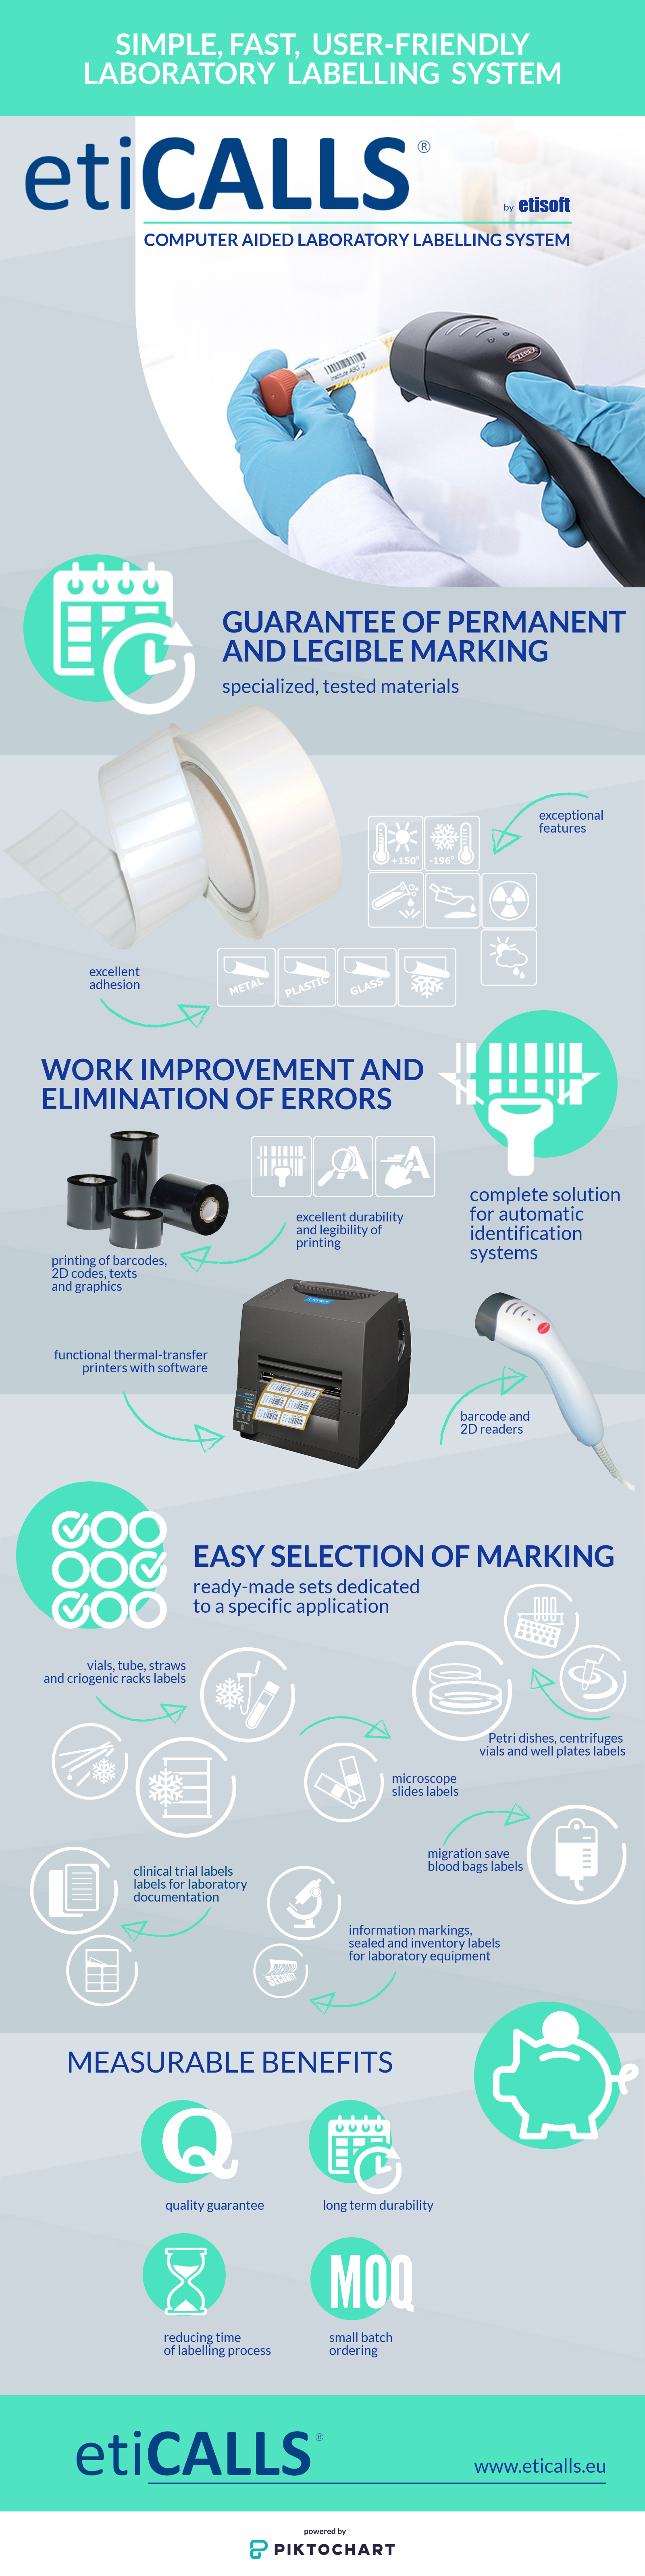 etiCALLS - laboratory labelling system